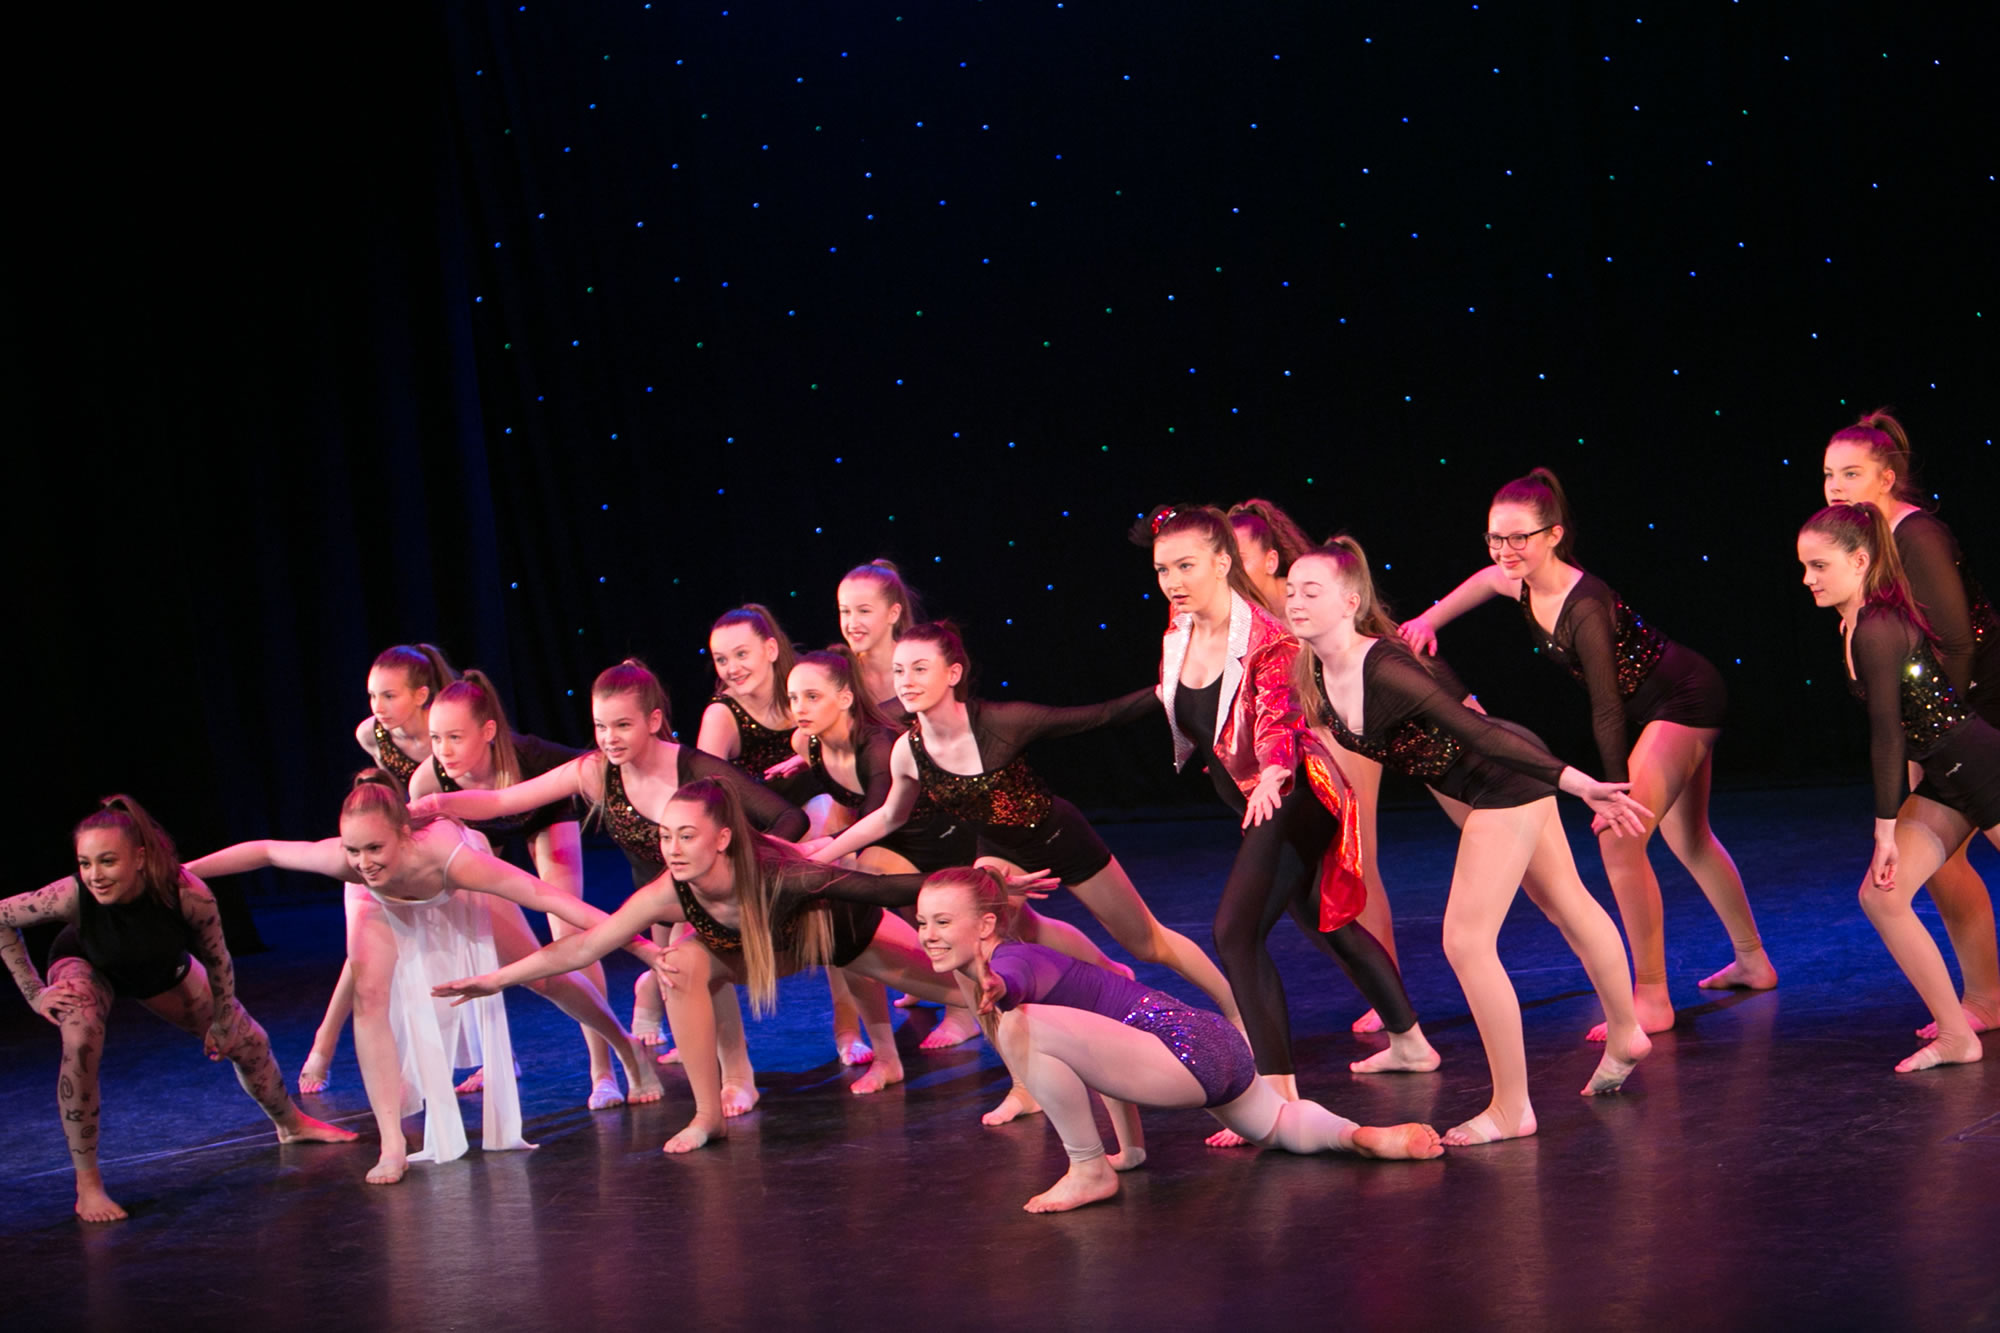 Hitchin_School_of_Dance_Show_2019-SM1_1883.jpg